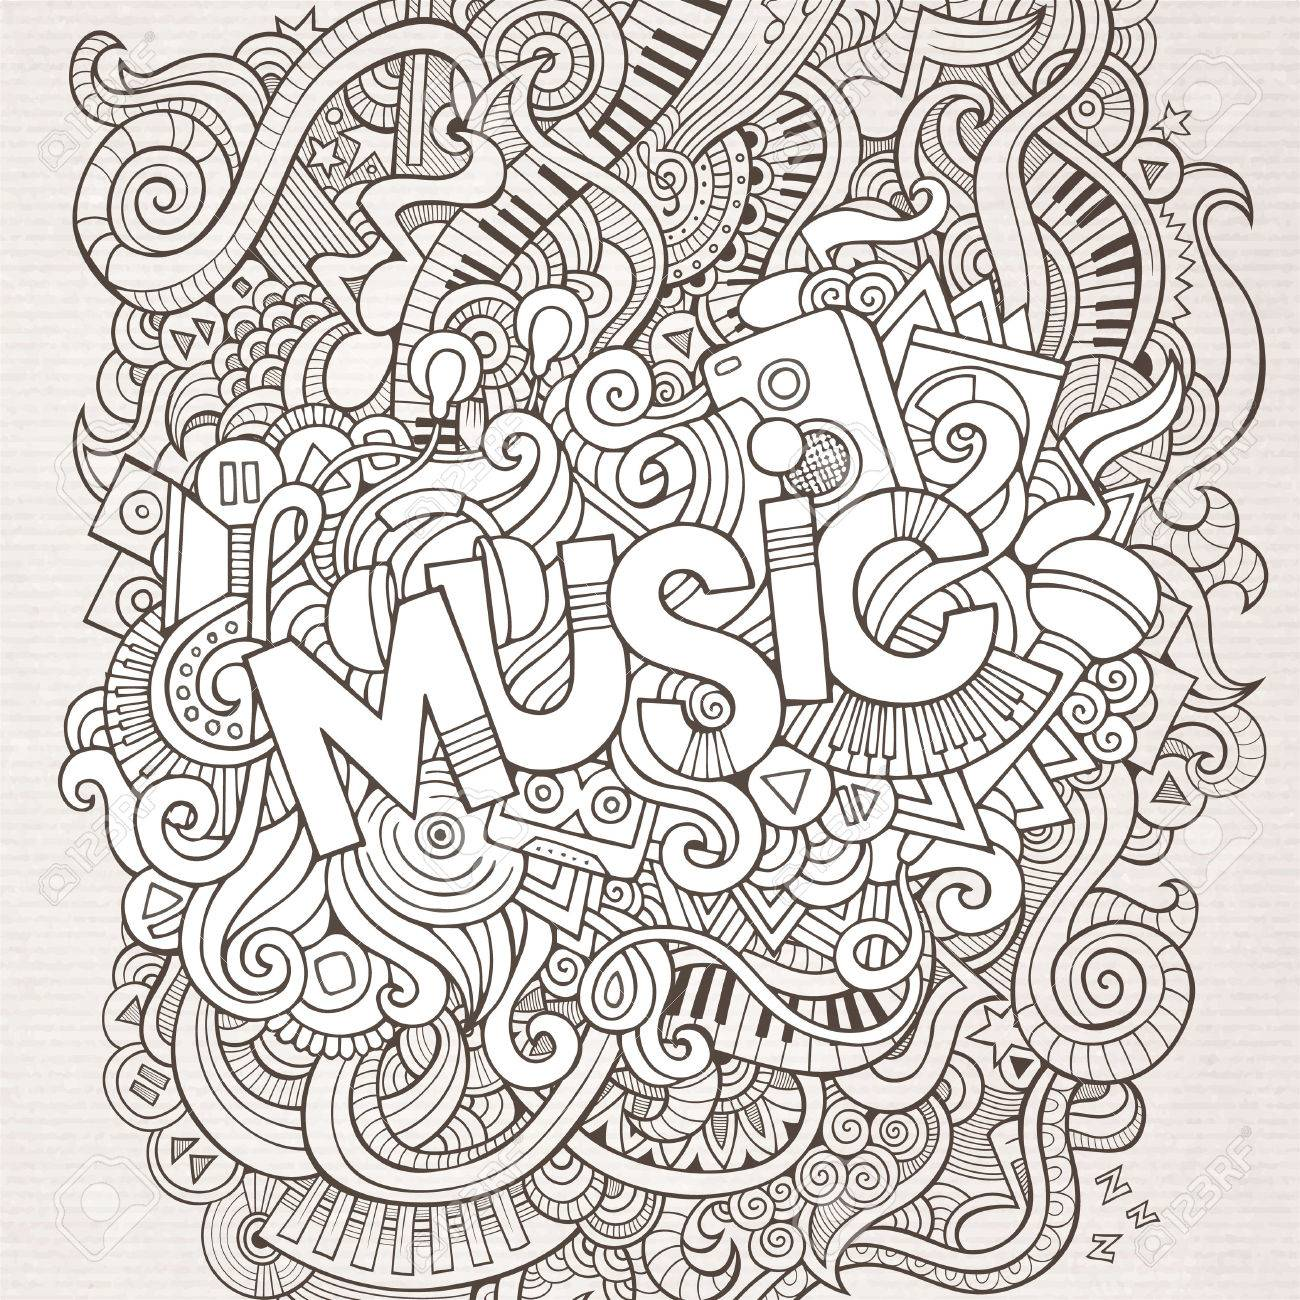 Stock vector music hand lettering and doodles elements - Music Hand Lettering And Doodles Elements Background Vector Illustration Stock Vector 41390354